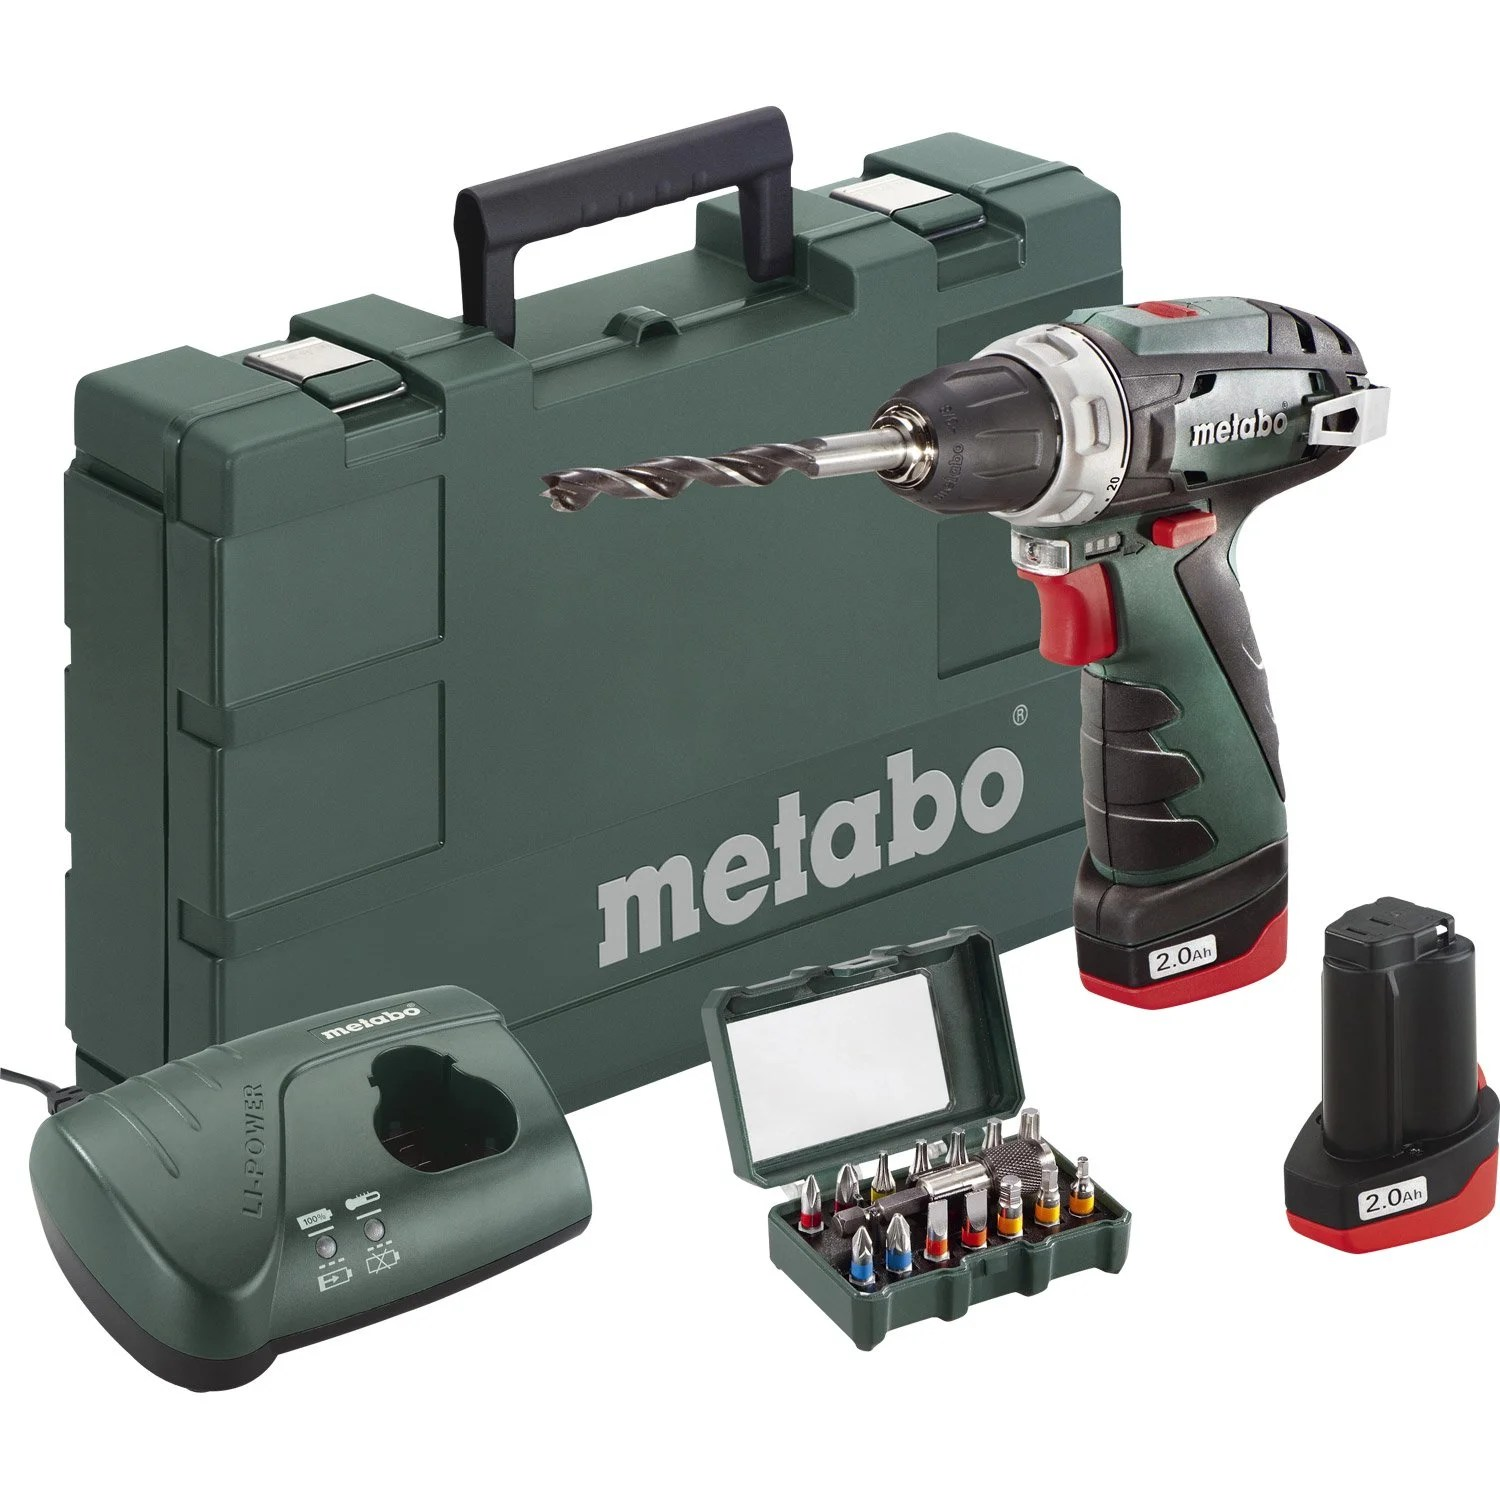 Metabo Leroy Merlin Perceuse Sans Fil Metabo 10 8 V 2 Ah 2 Batteries Leroy